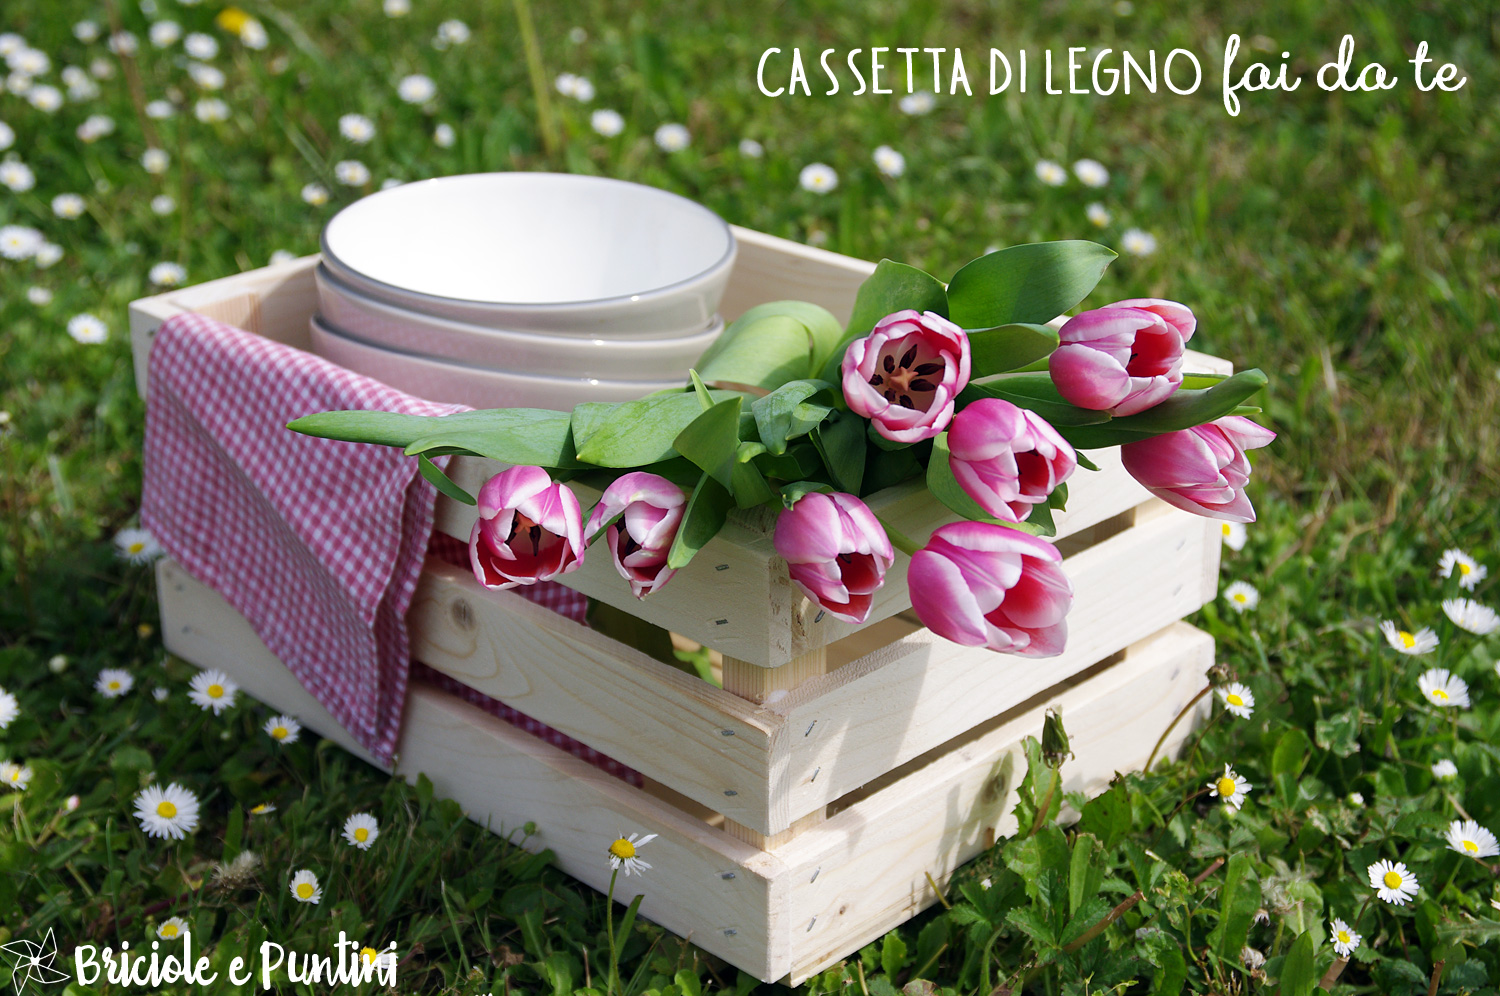 Cassette Legno Decorate Tutorial Home Decor Cassette In Legno Fai Da Te Con Dremel